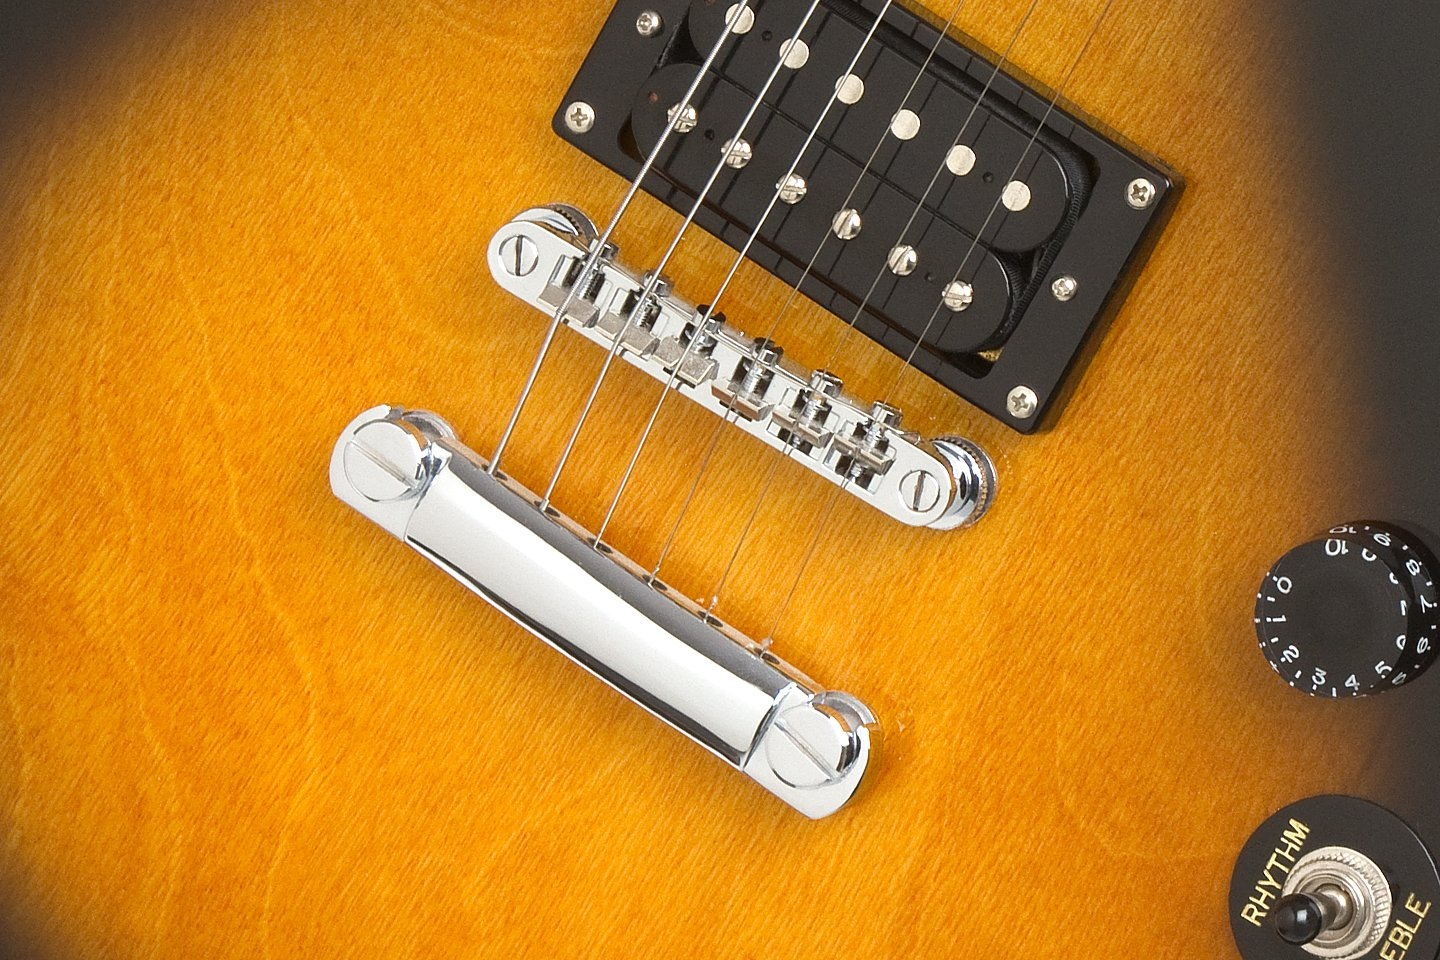 A Closeup of the base part of the Vintage Sunburst Epiphone Electric Guitar